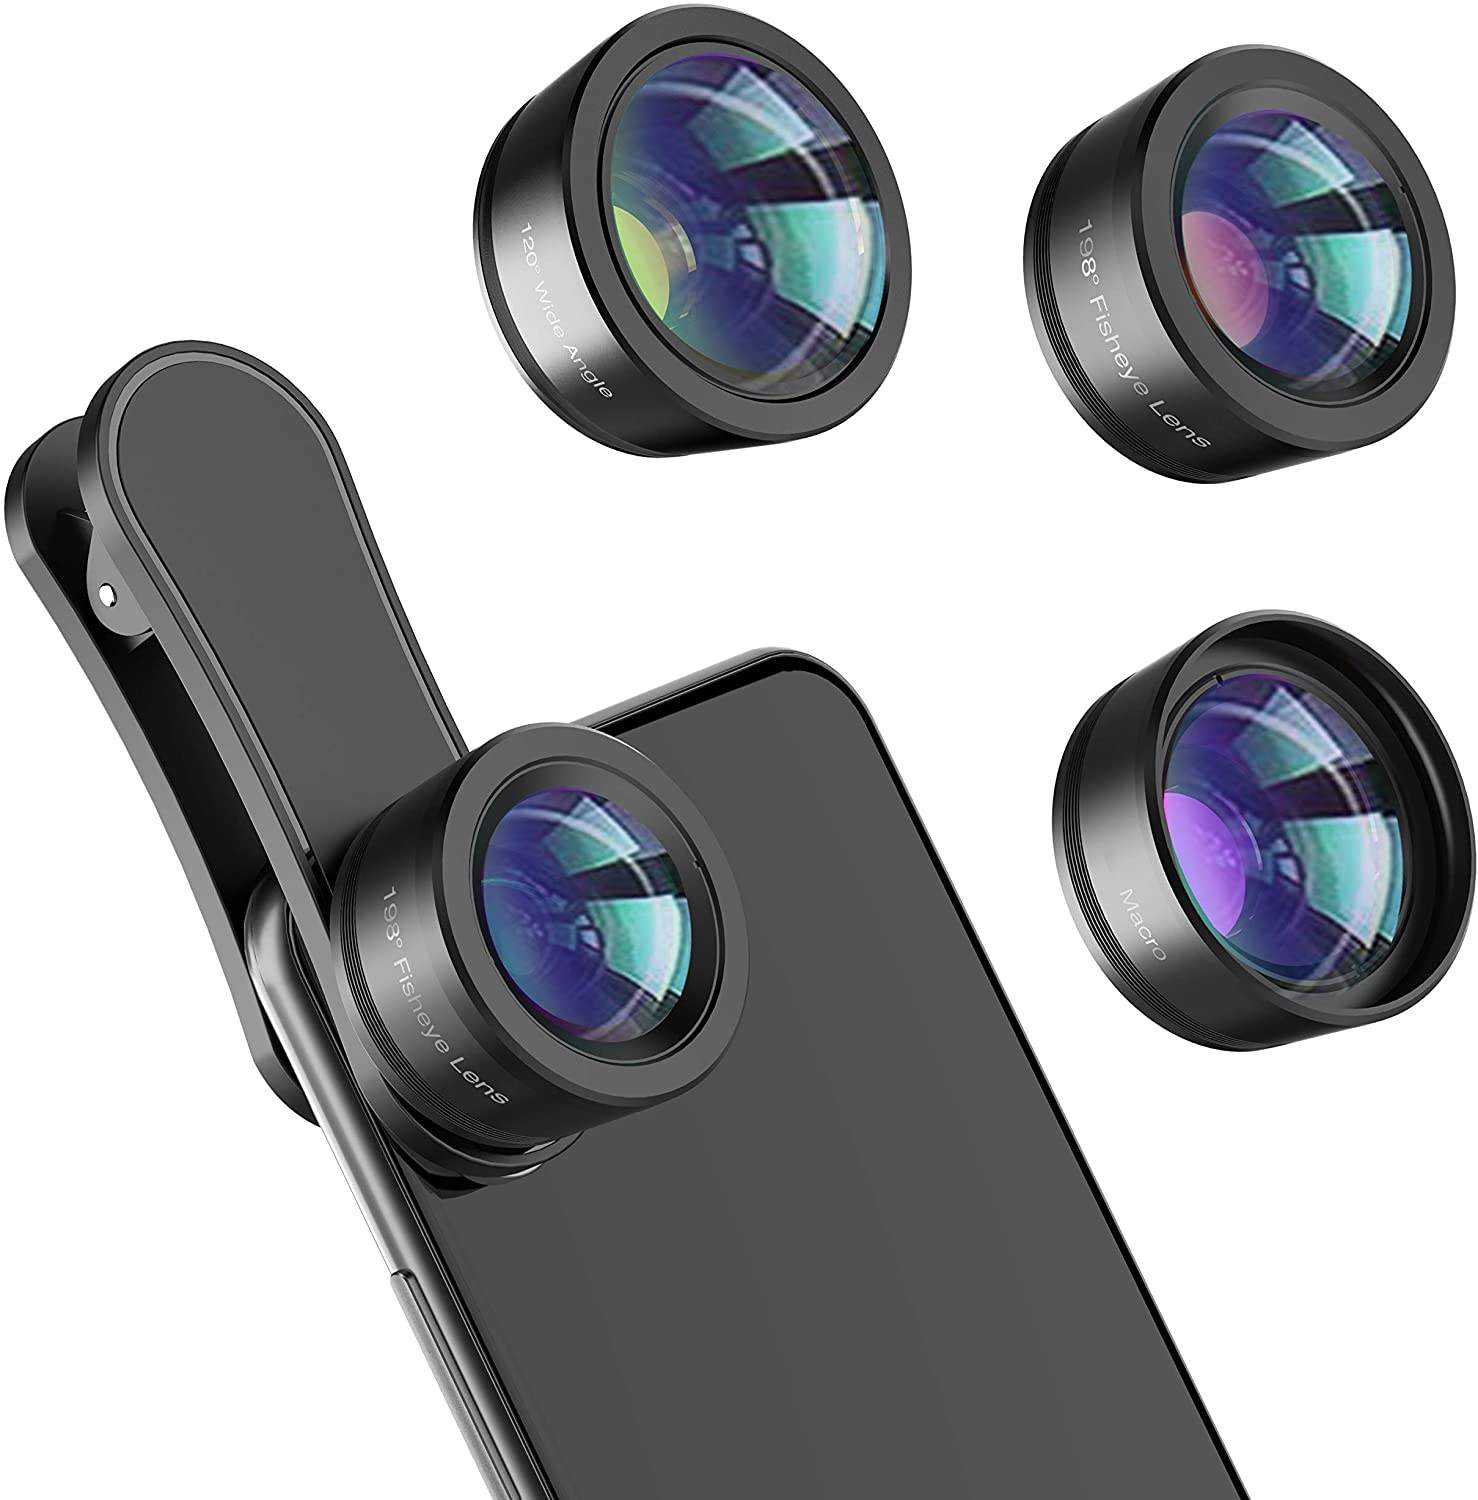 Mobile Phone Gadget 2019 Camera Lenses 18MM low Distortion 110 Degree Wide Angle Lens for Smartphones